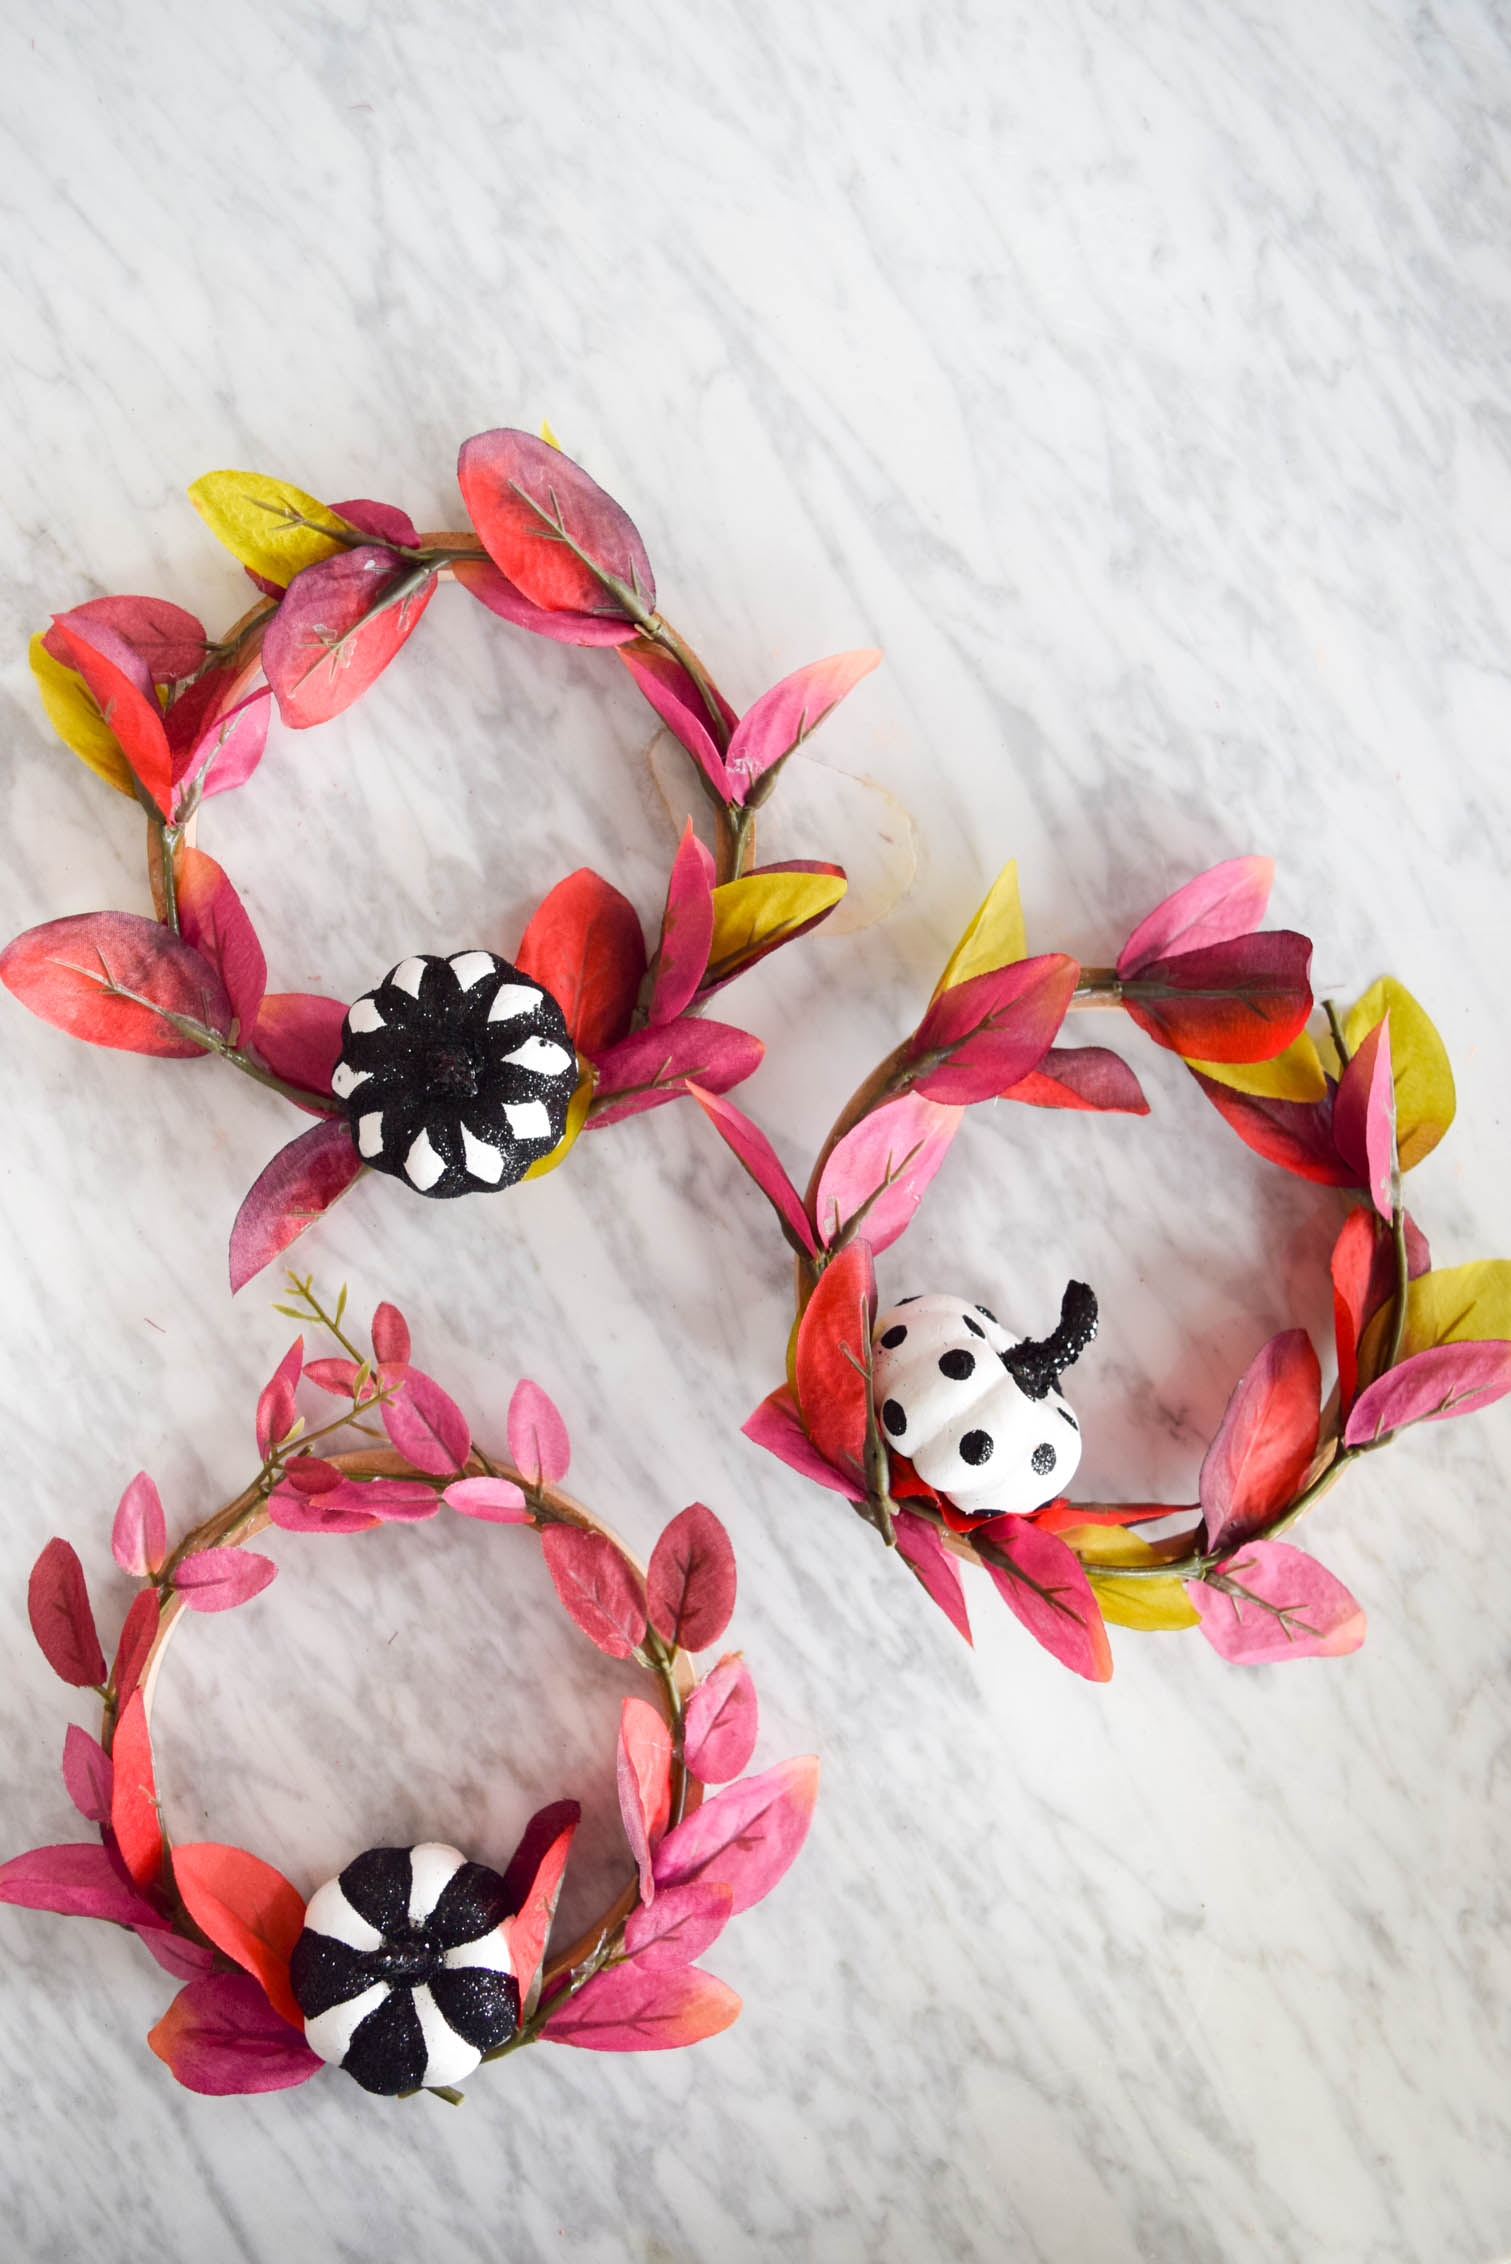 3 mini purple wreaths with pumpkins on a marble table